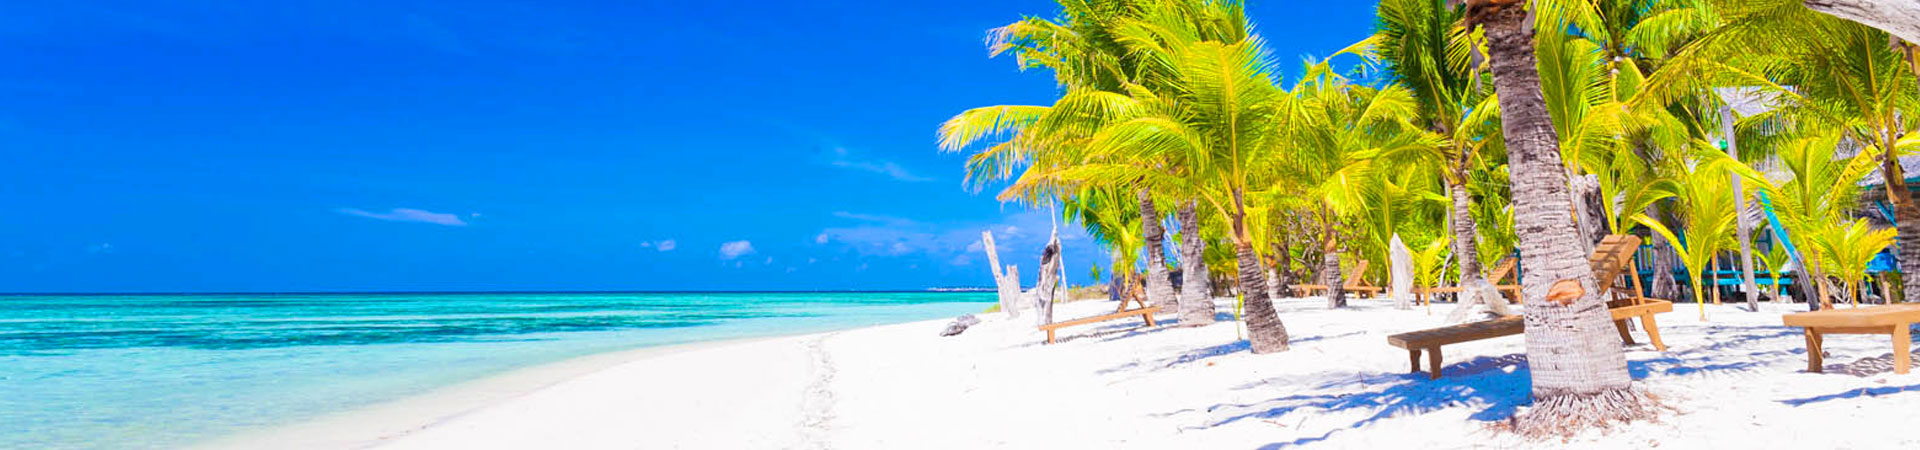 5-Days-Island-Zanzibar-Beach-Holiday